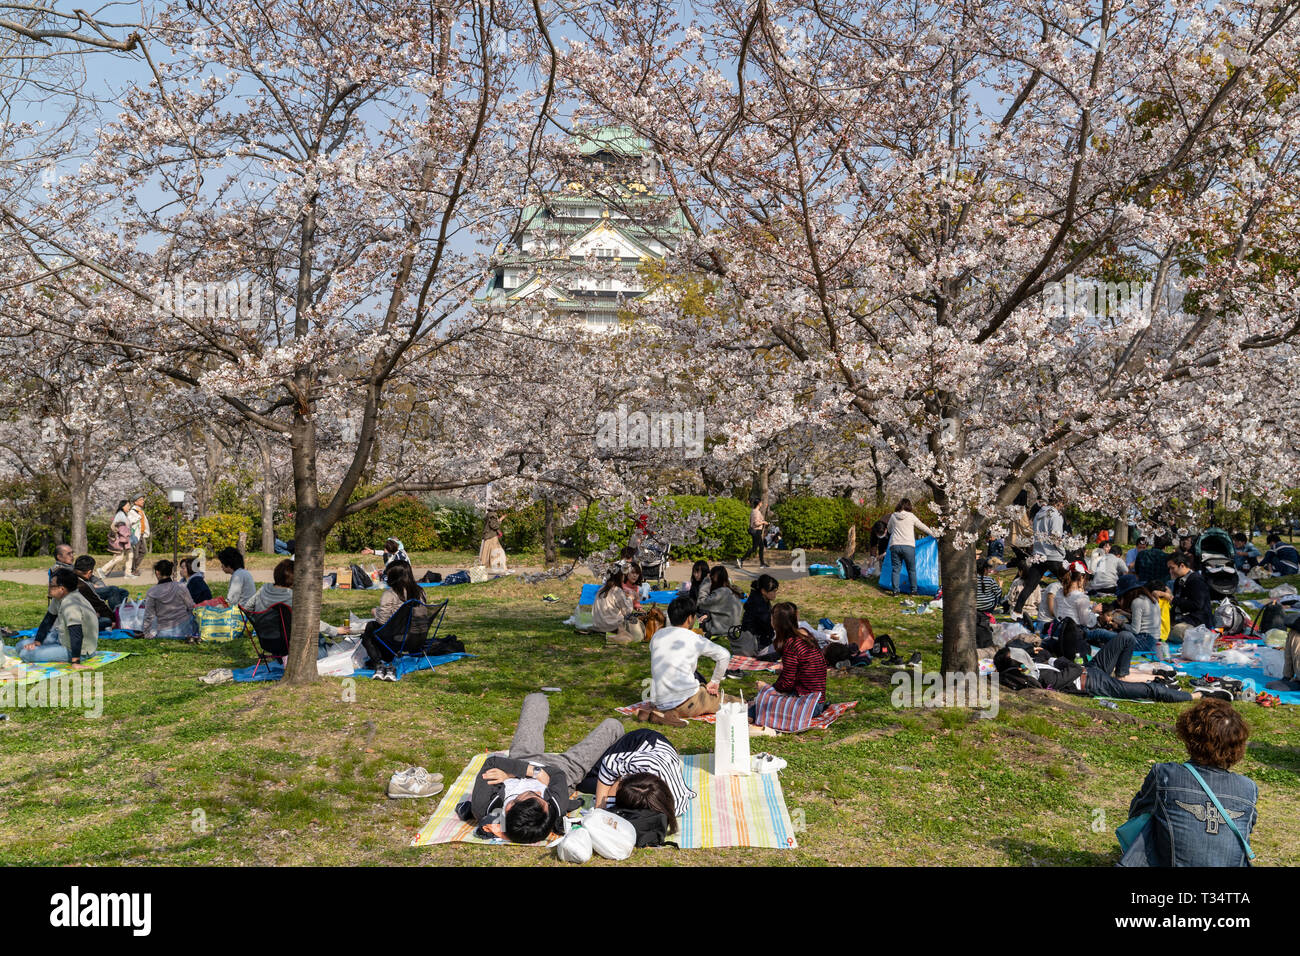 People sitting and having picnics, on blue and green sheets, under cherry blossom trees